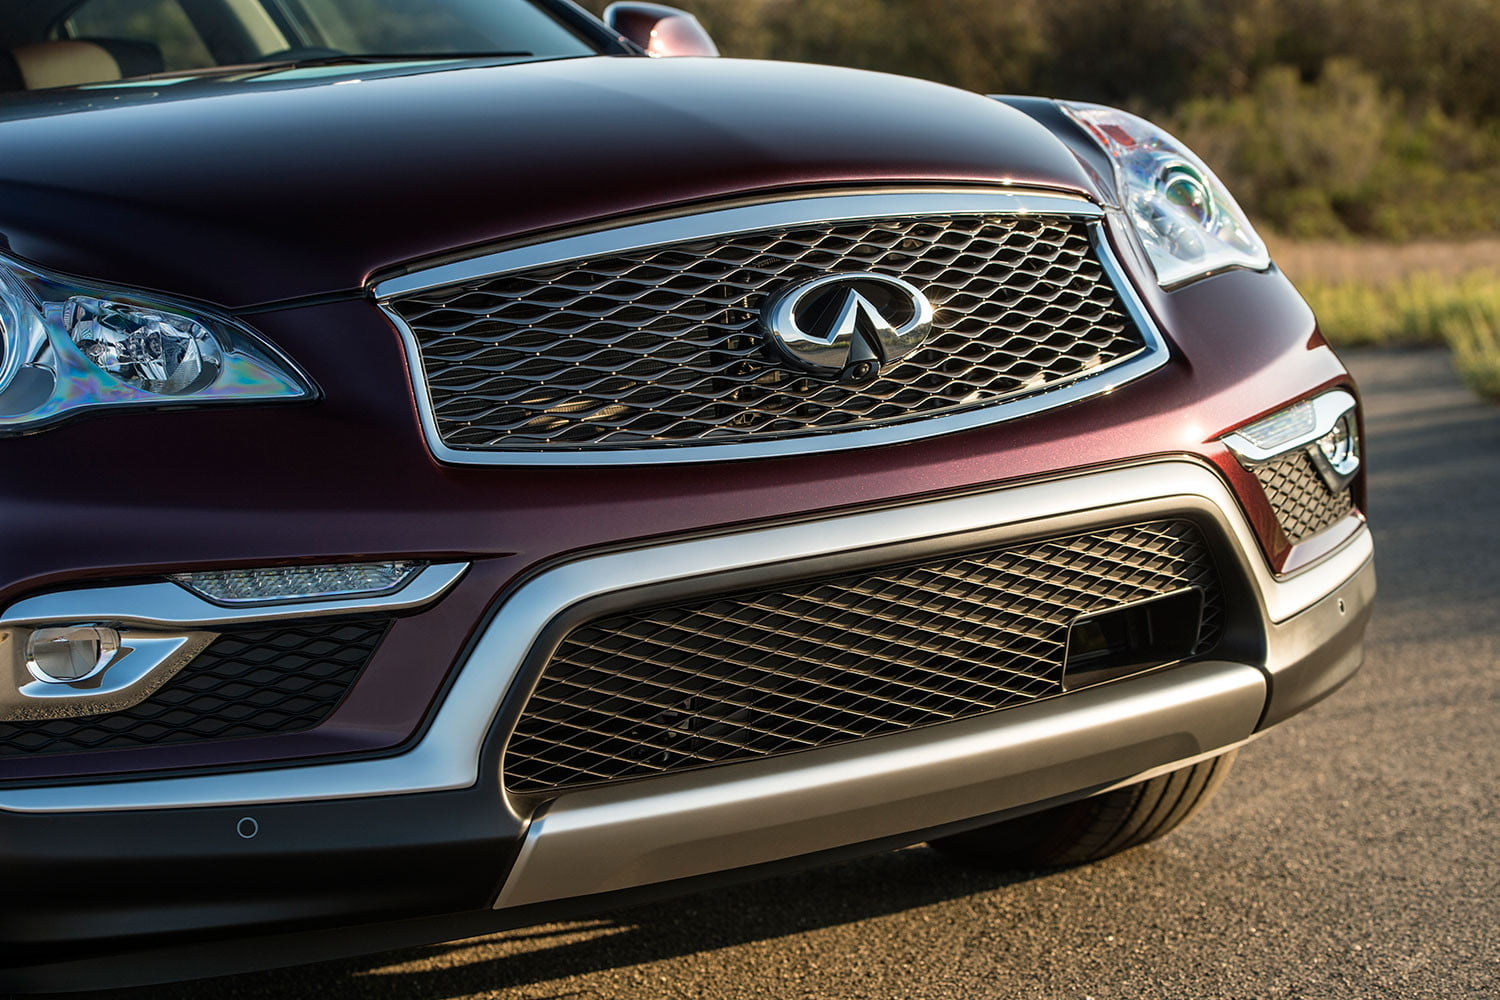 2016 infiniti qx50 compact luxury crossover review digital trends. Black Bedroom Furniture Sets. Home Design Ideas